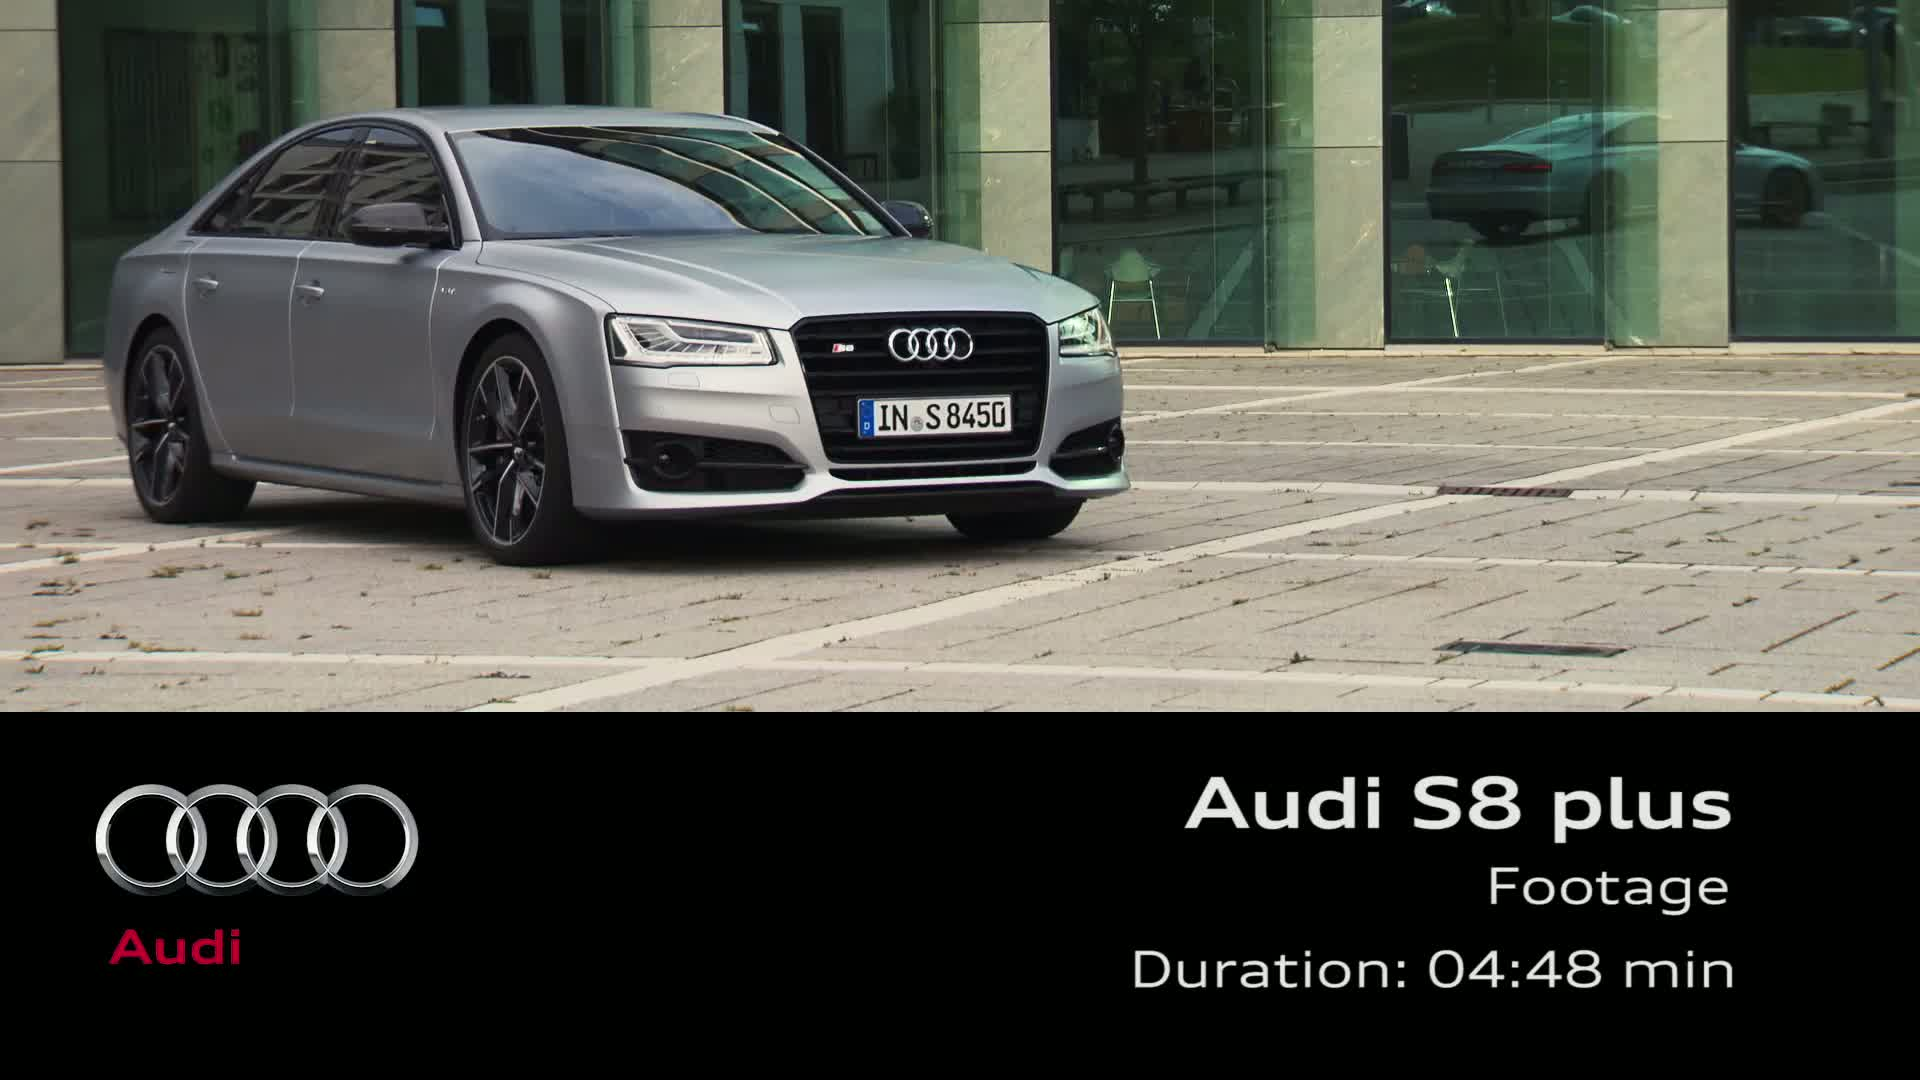 Der Audi S8 plus - Footage